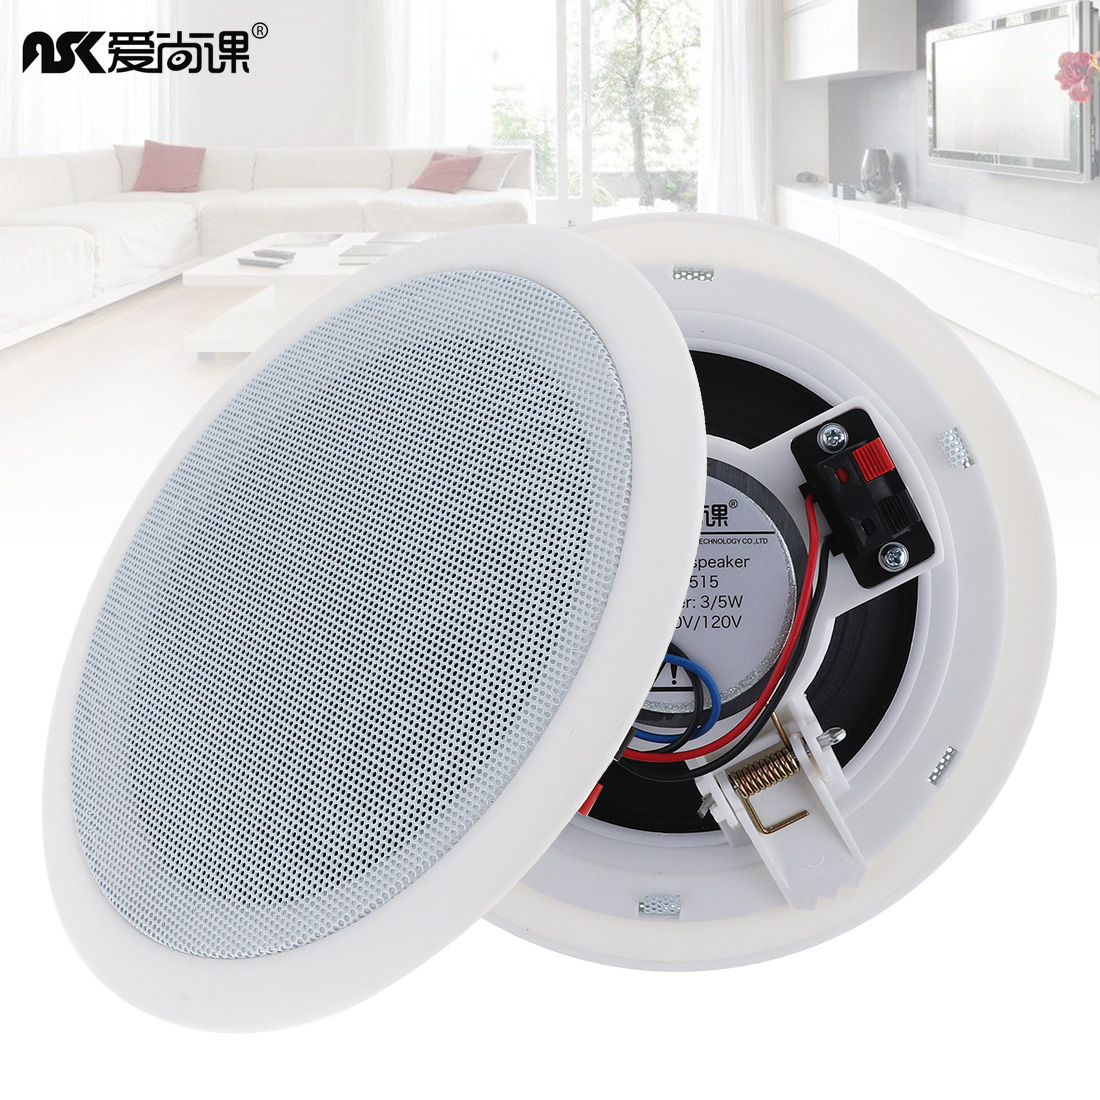 ASK-515 2pcs 5 Inch 5W Microphone Input USB MP3 Player Ceiling Speaker Background Music Speaker for Home/Supermarket/Restaurant